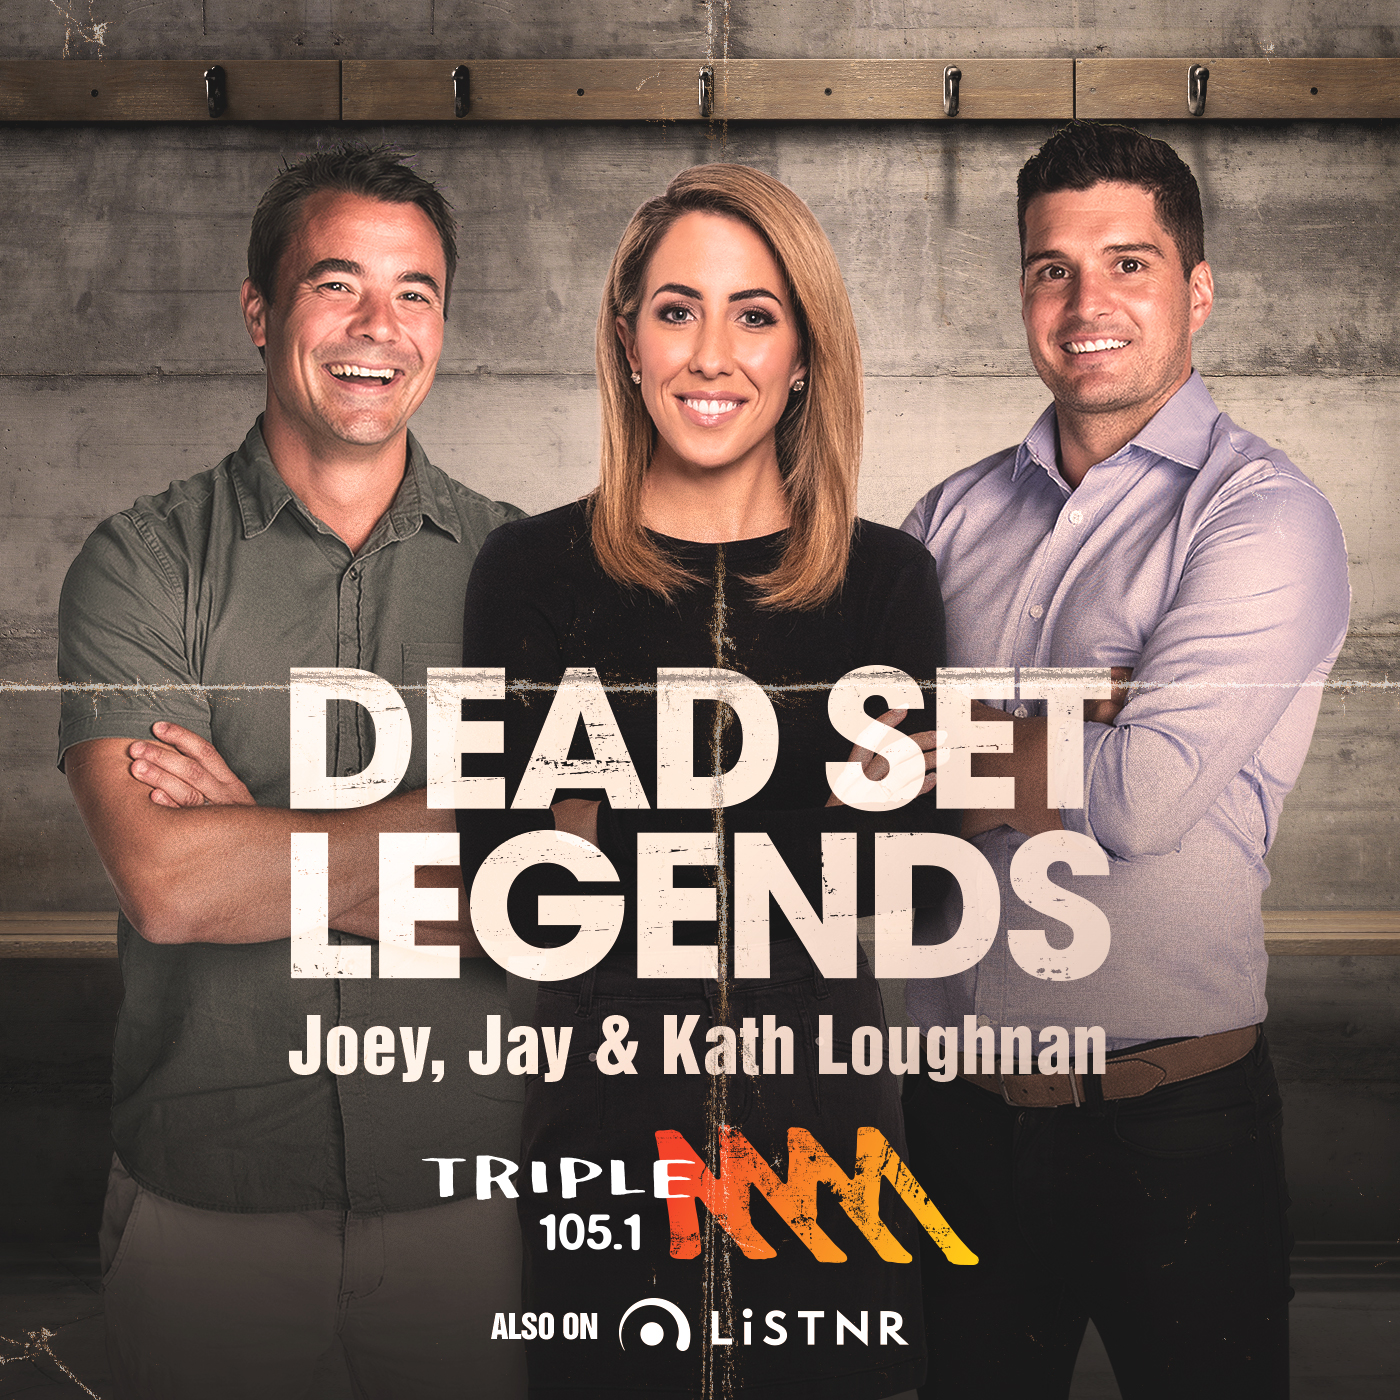 OLD - Do not use - The Dead Set Legends Melbourne Catch Up - 105.1 Triple M Melbourne - OLD